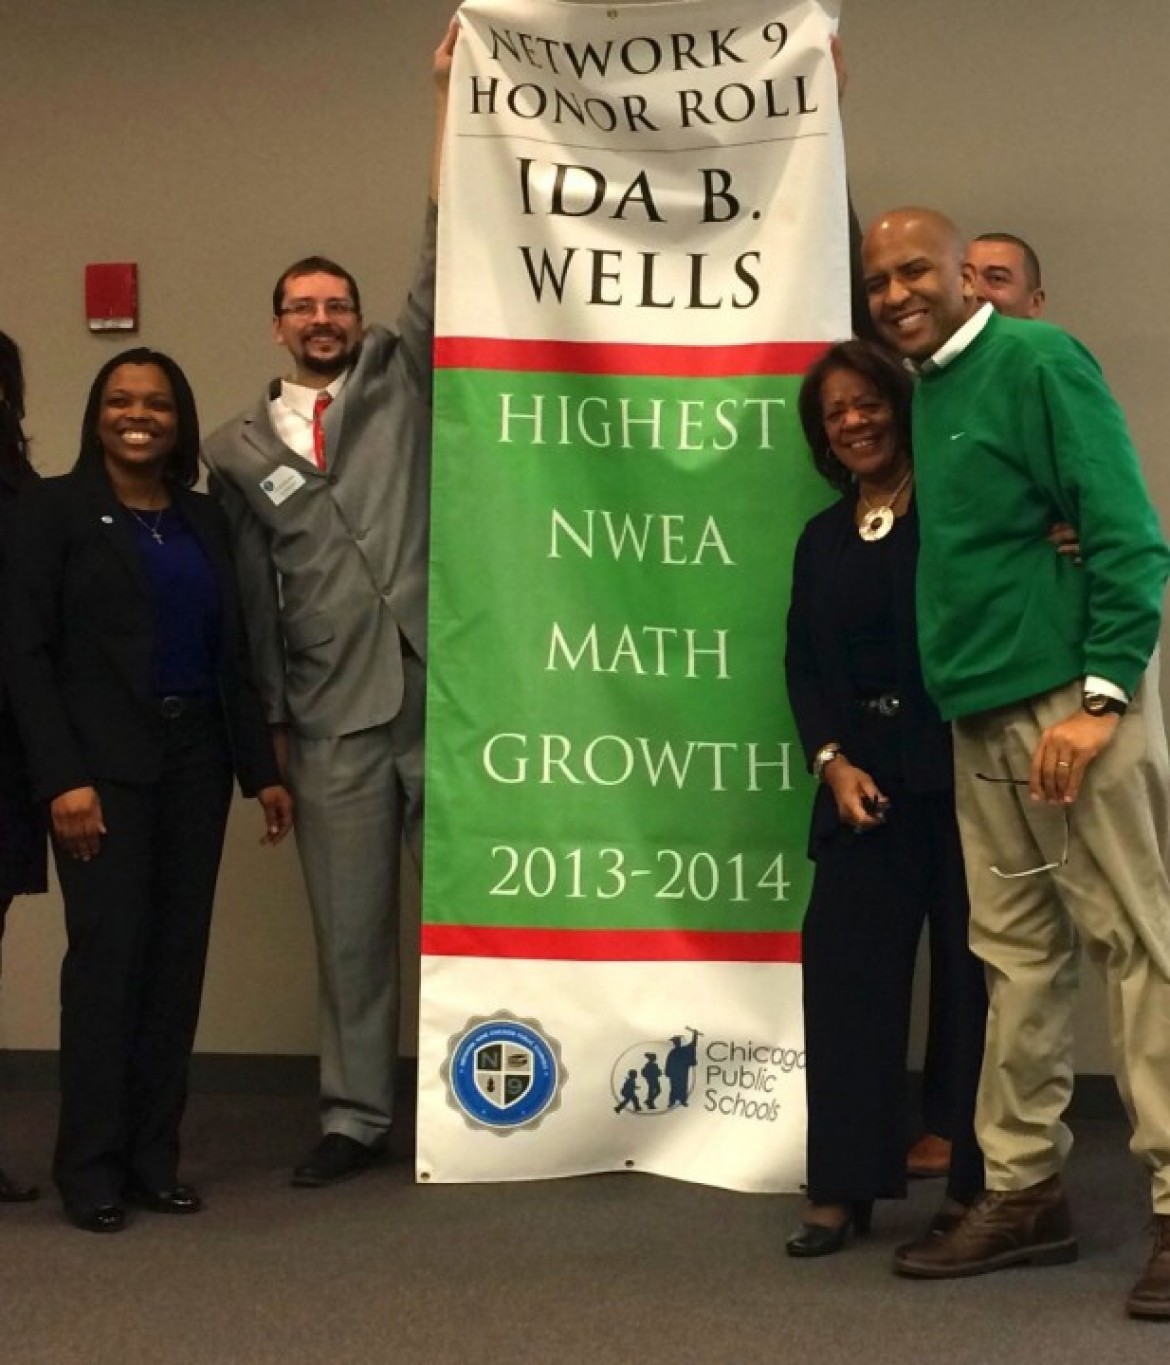 Highest NWEA Math growth 2013 – 2014